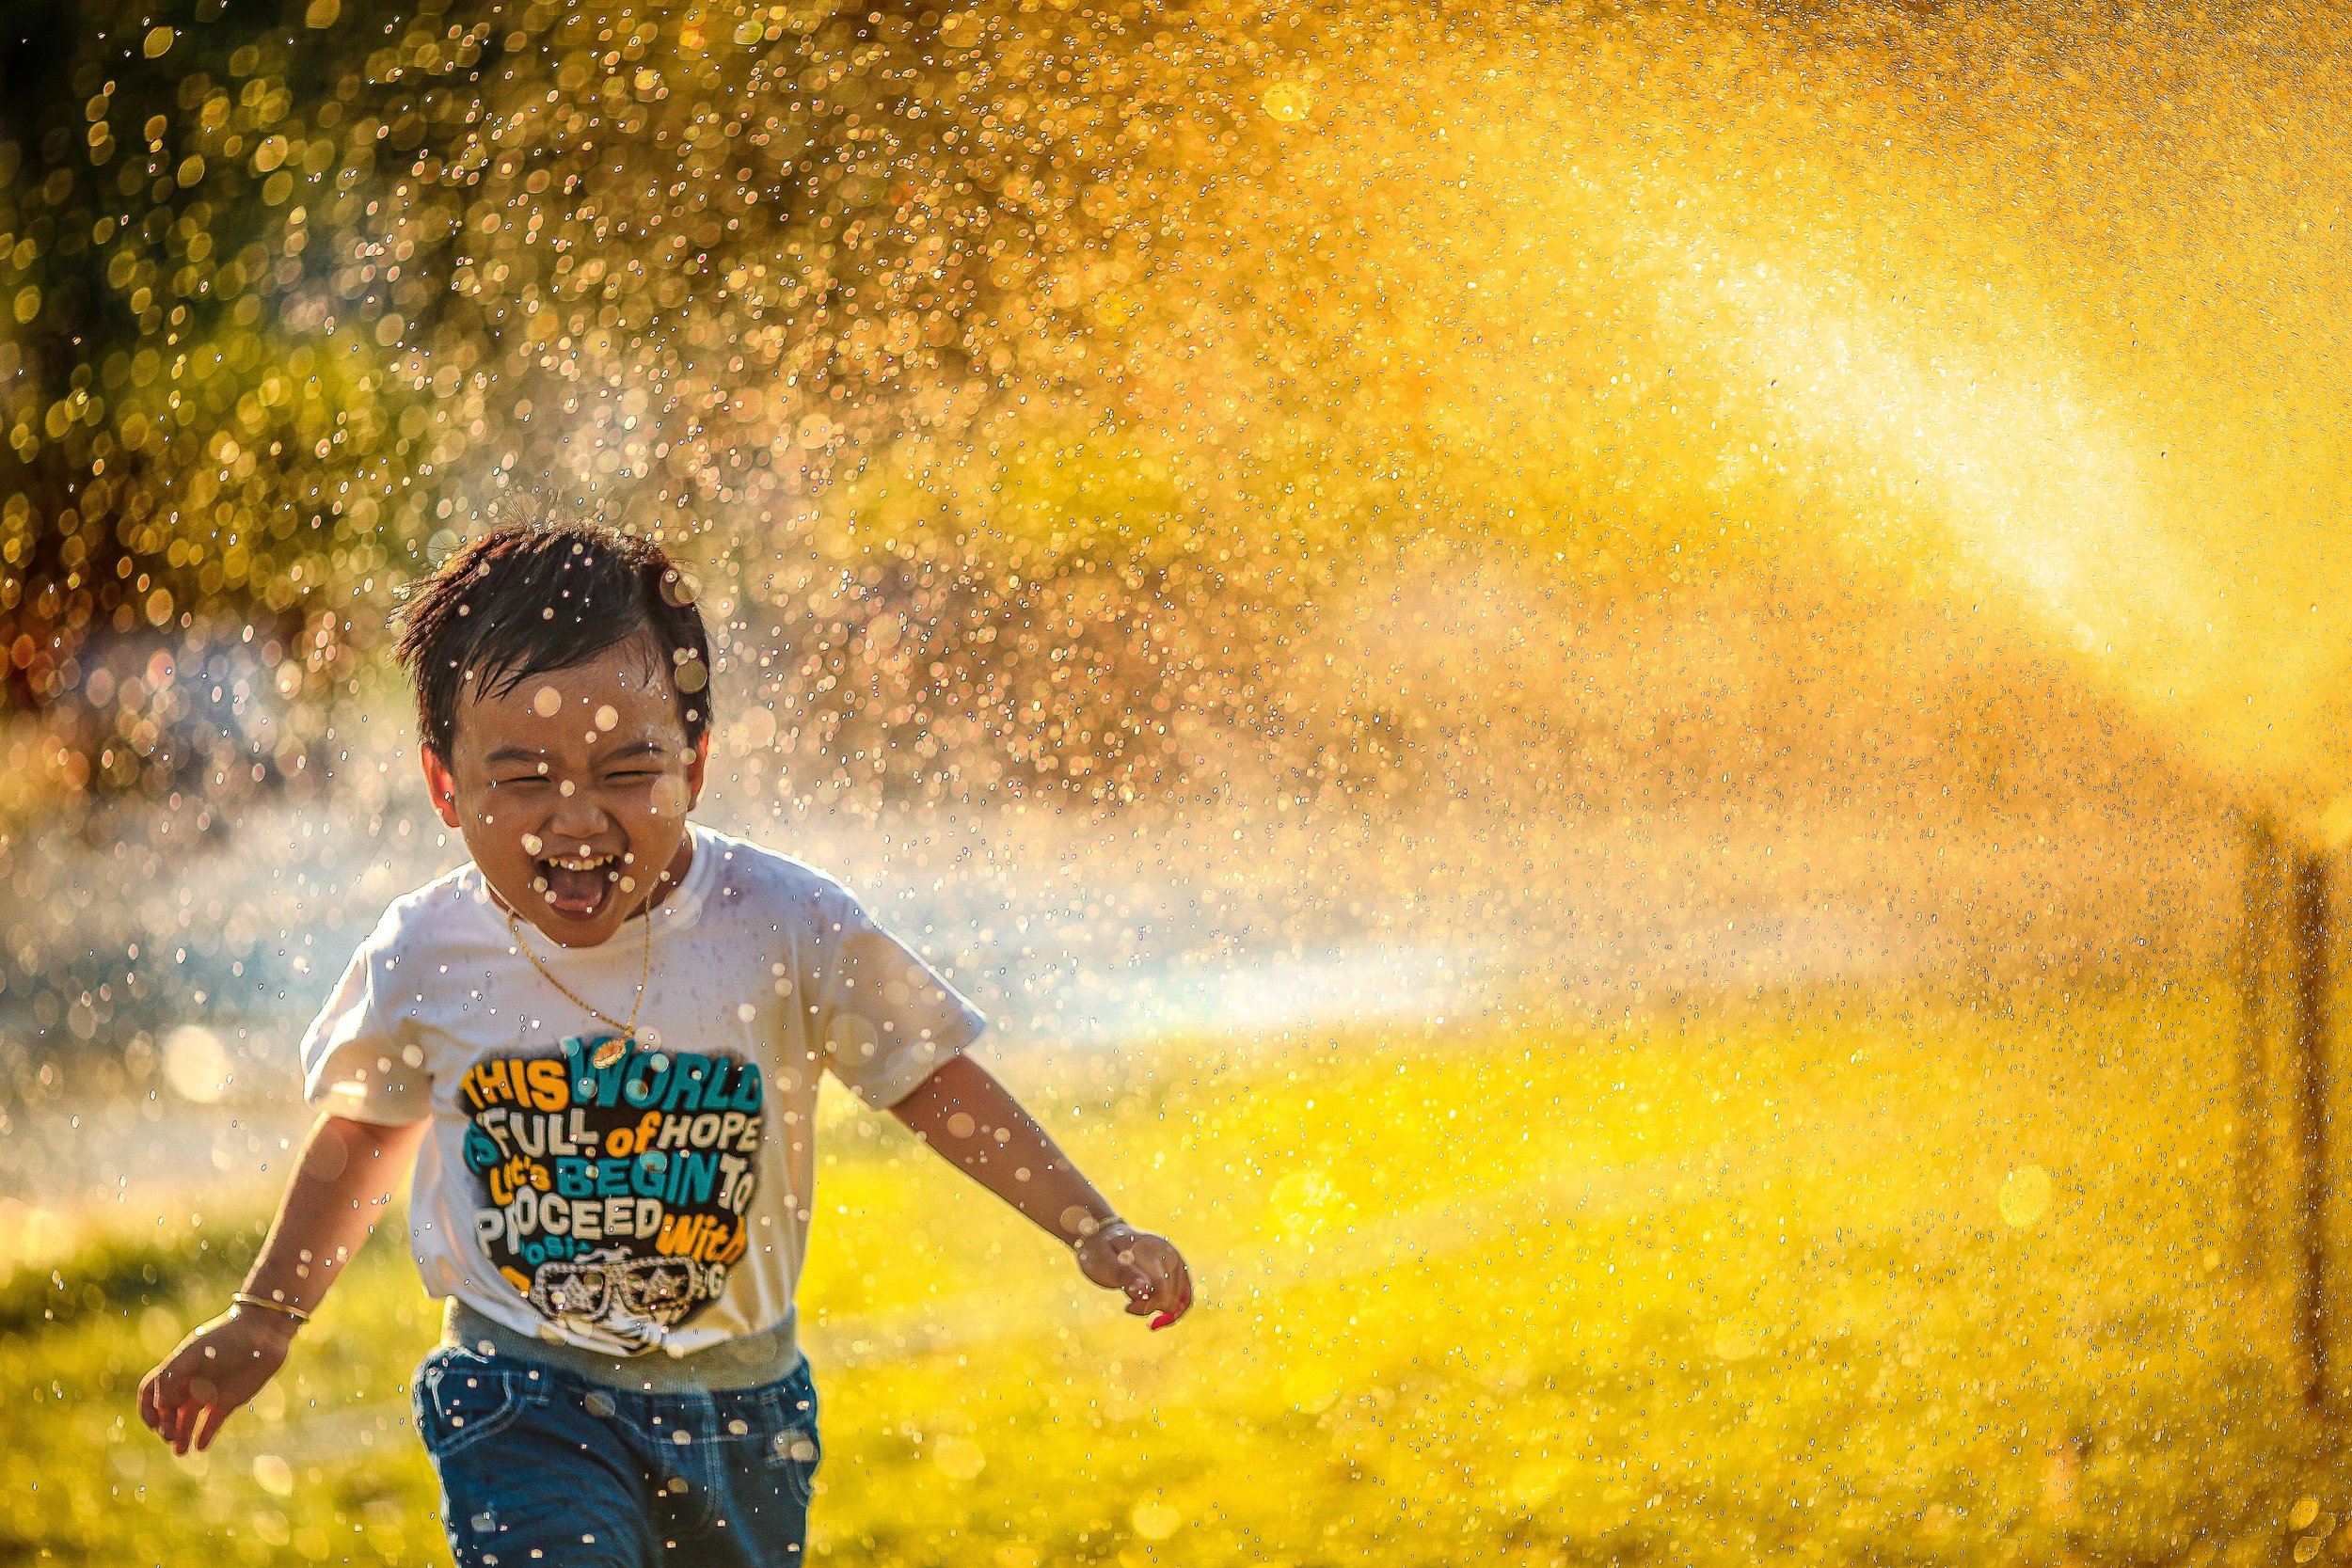 Child running and laughing through a sprinkler.